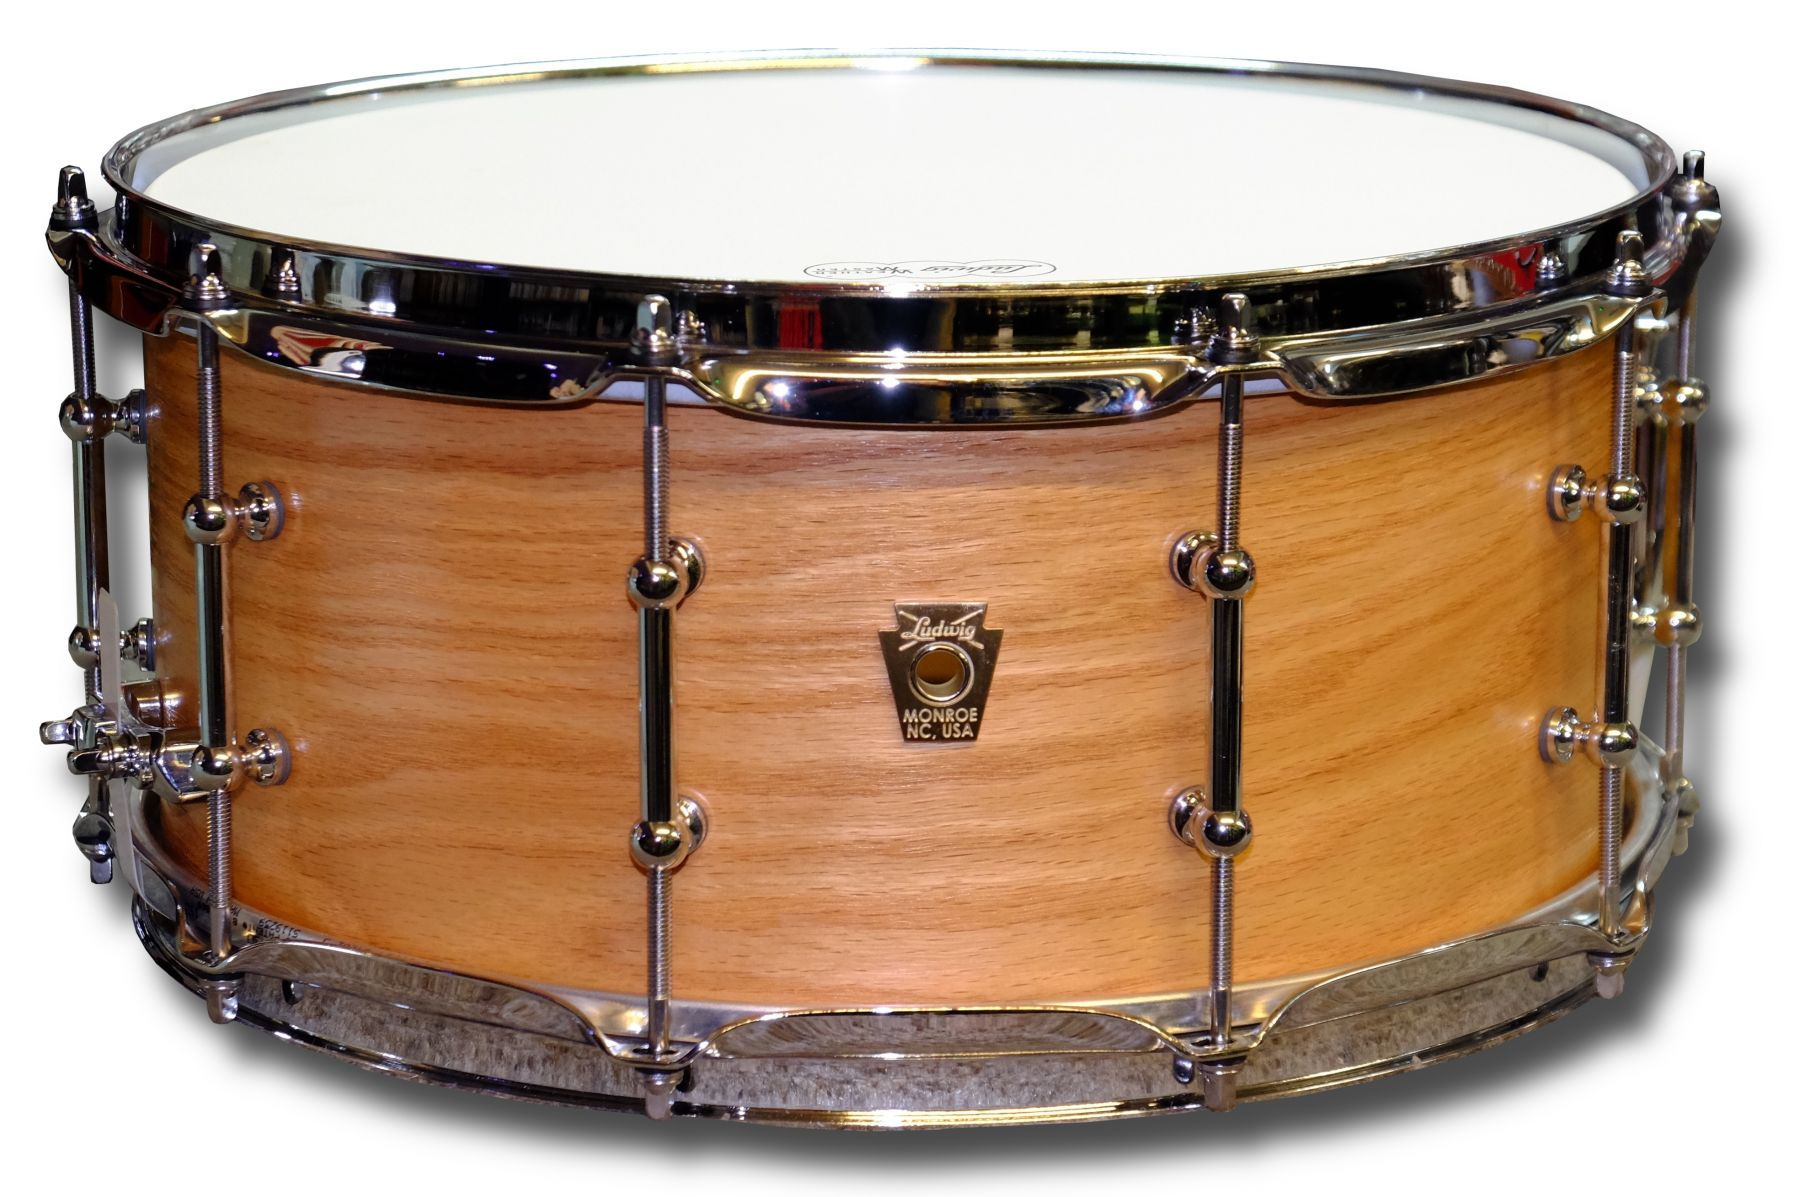 rock factory snare drums ludwig ls403 14in x classic maple snare drum. Black Bedroom Furniture Sets. Home Design Ideas